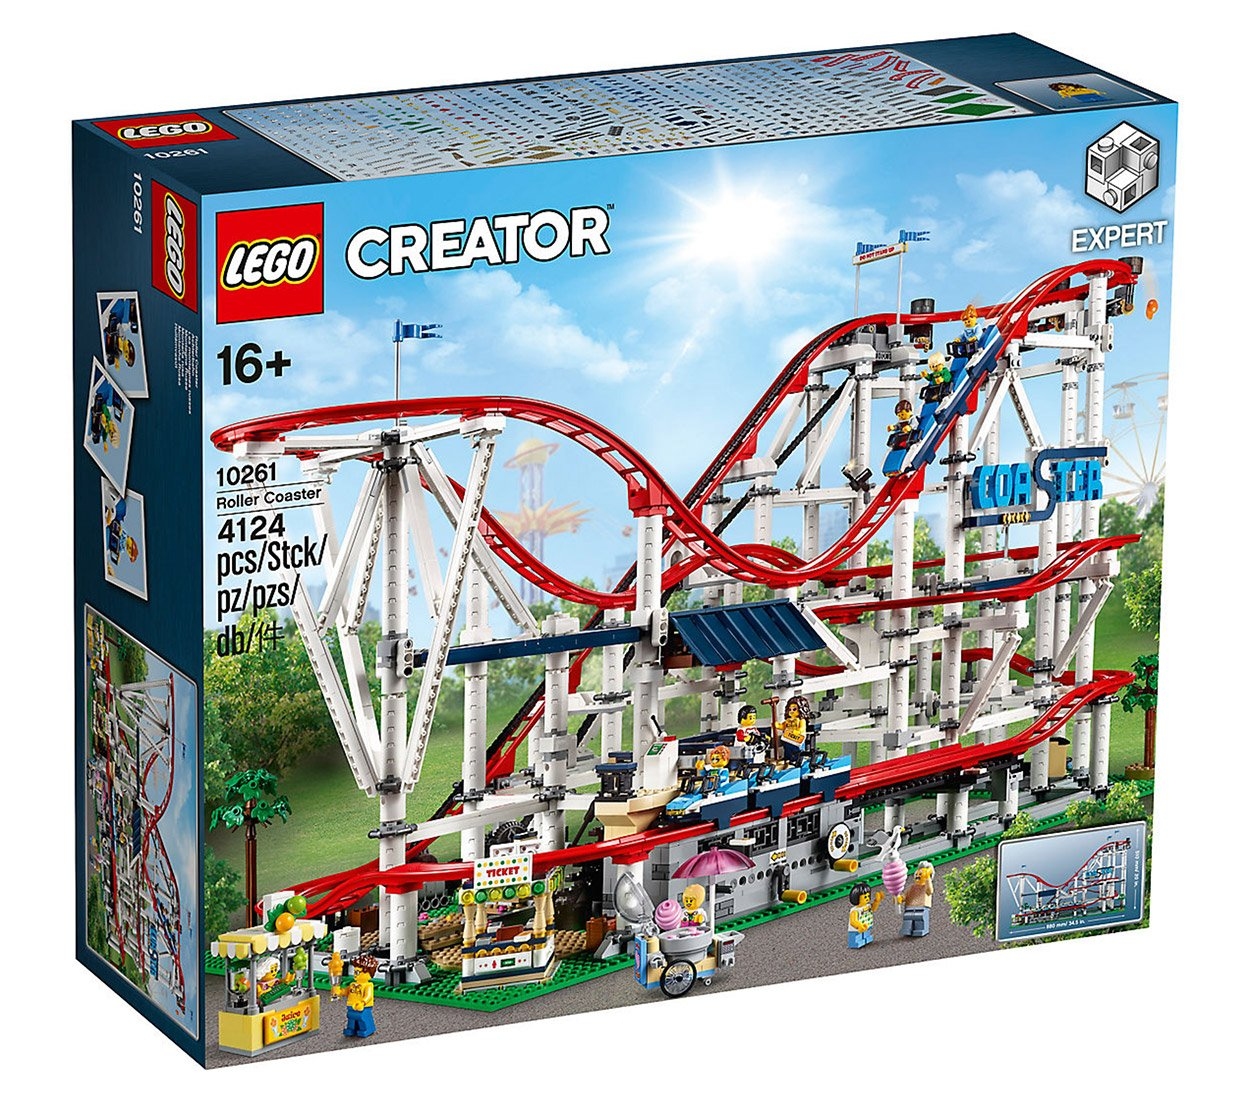 lego creator expert roller coaster set 10261. Black Bedroom Furniture Sets. Home Design Ideas